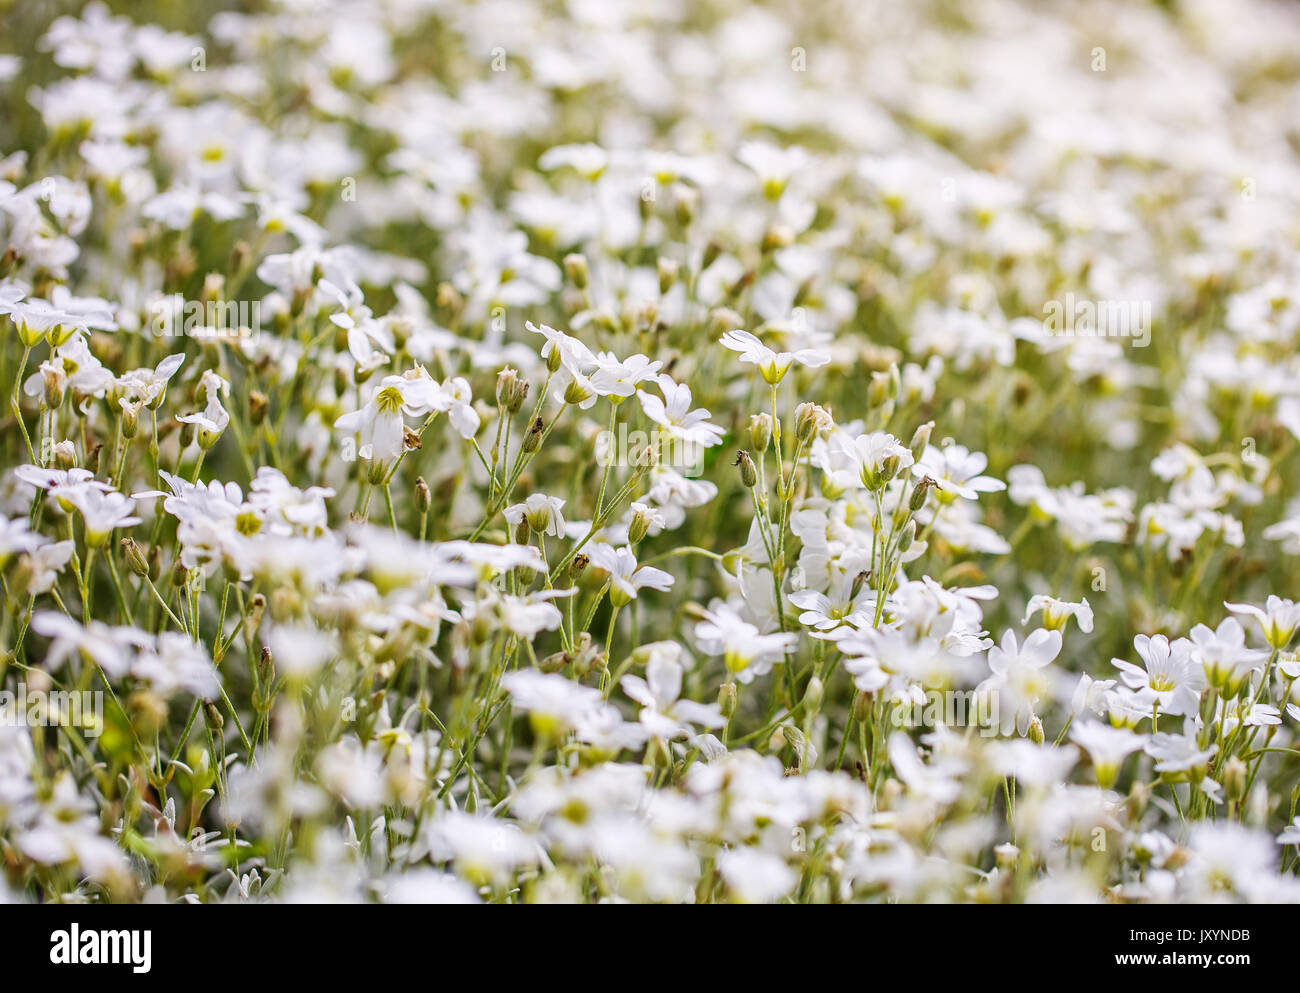 Field of a beautiful white flowers daisies stock photo 154273543 field of a beautiful white flowers daisies izmirmasajfo